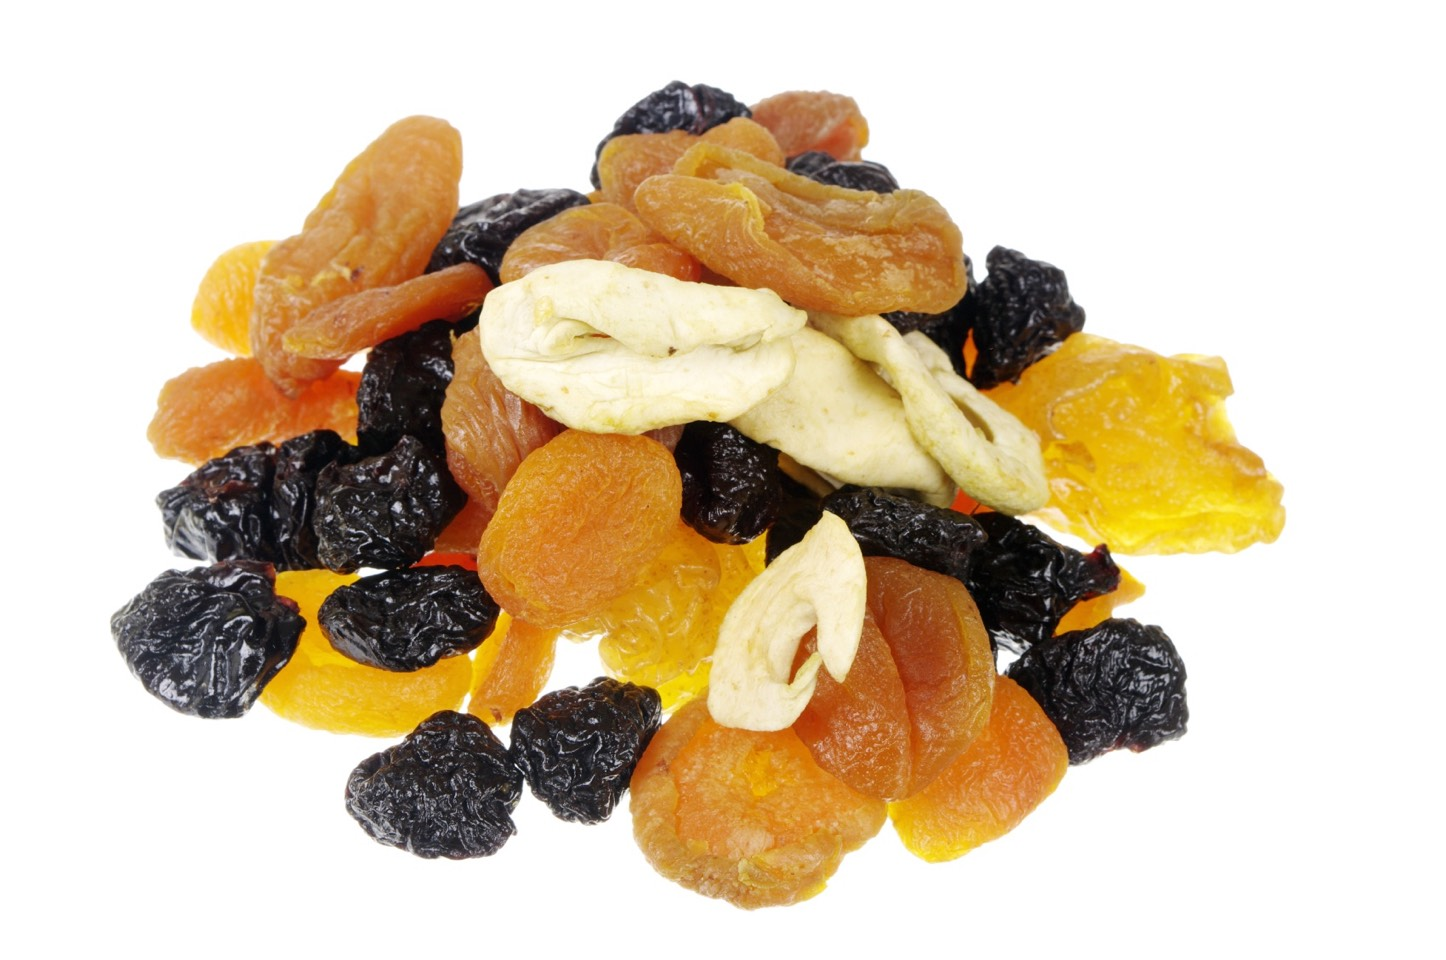 Dried Fruit  Dried fruit tends to sound a lot healthier than it is. Just a handful of dried cranberries, for instance, can contain up to 29 grams of sugar. Play it safe: Look for all-natural options that list only the fruit as the ingredient and no added sugars.